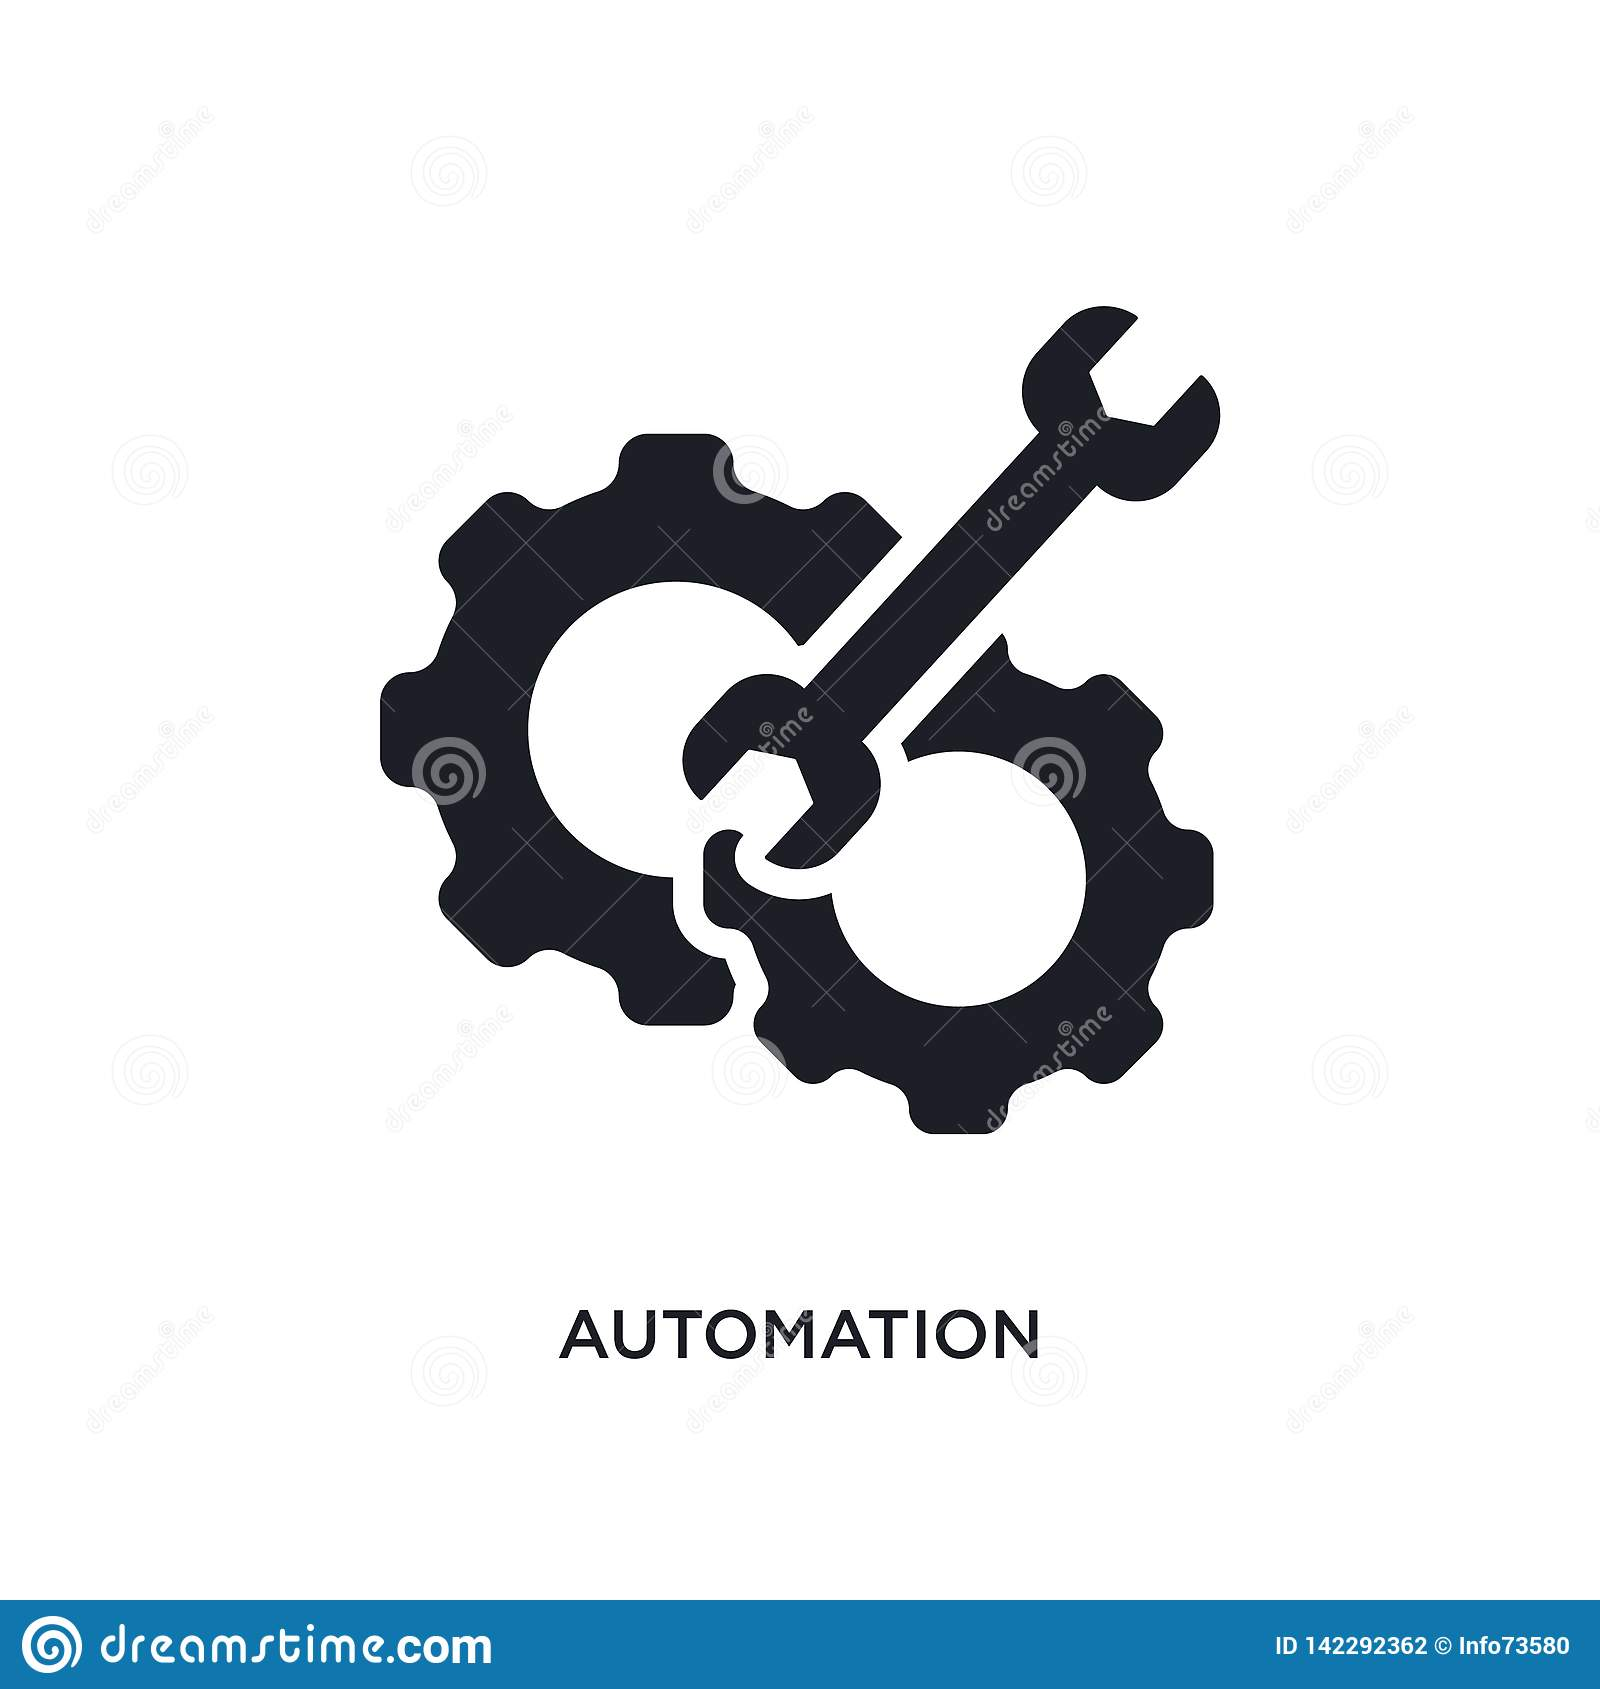 automation isolated icon. simple element illustration from smart house concept icons. automation editable logo sign symbol design